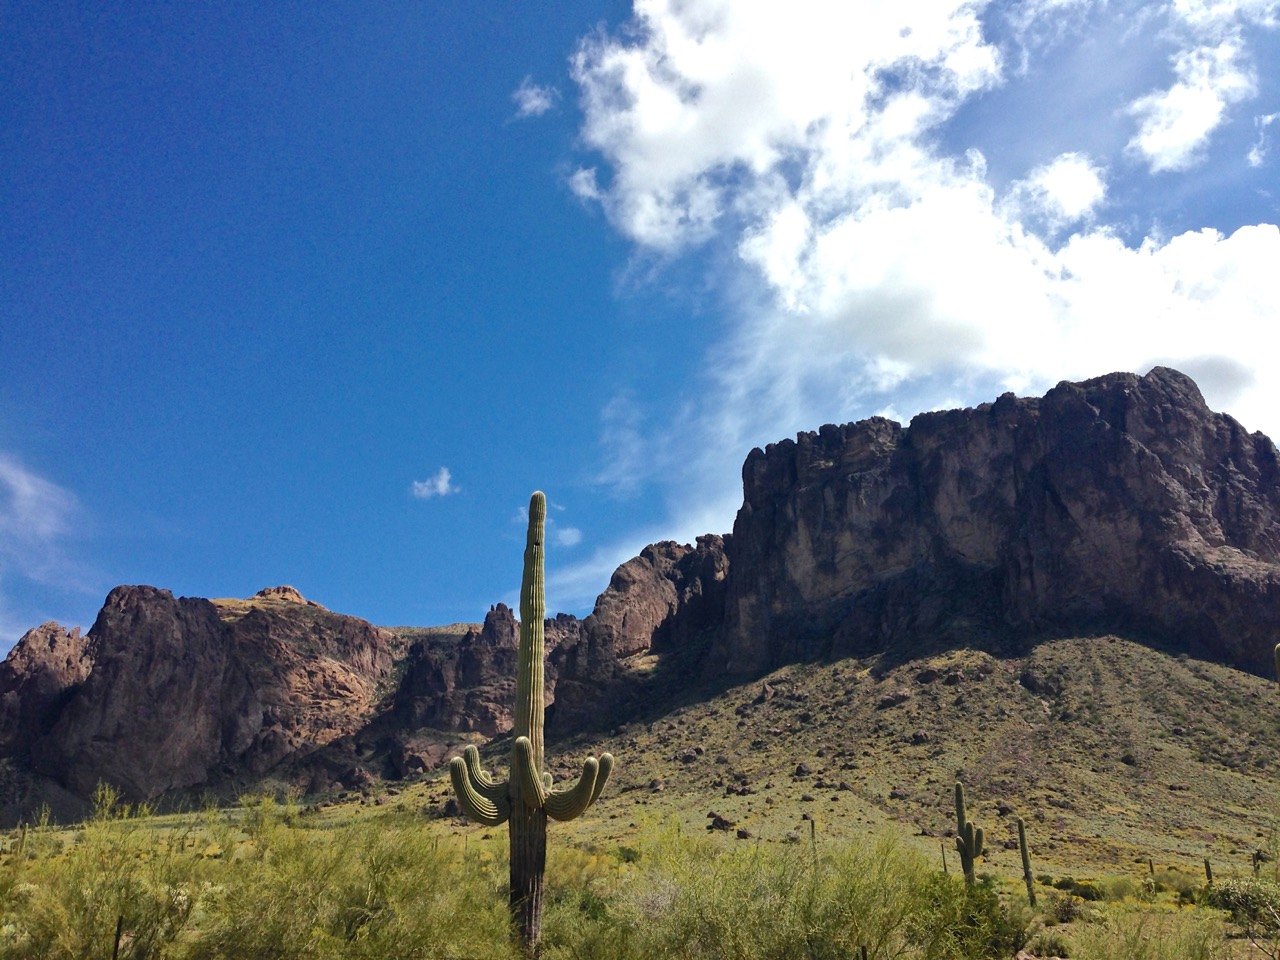 View of Superstition Mountain